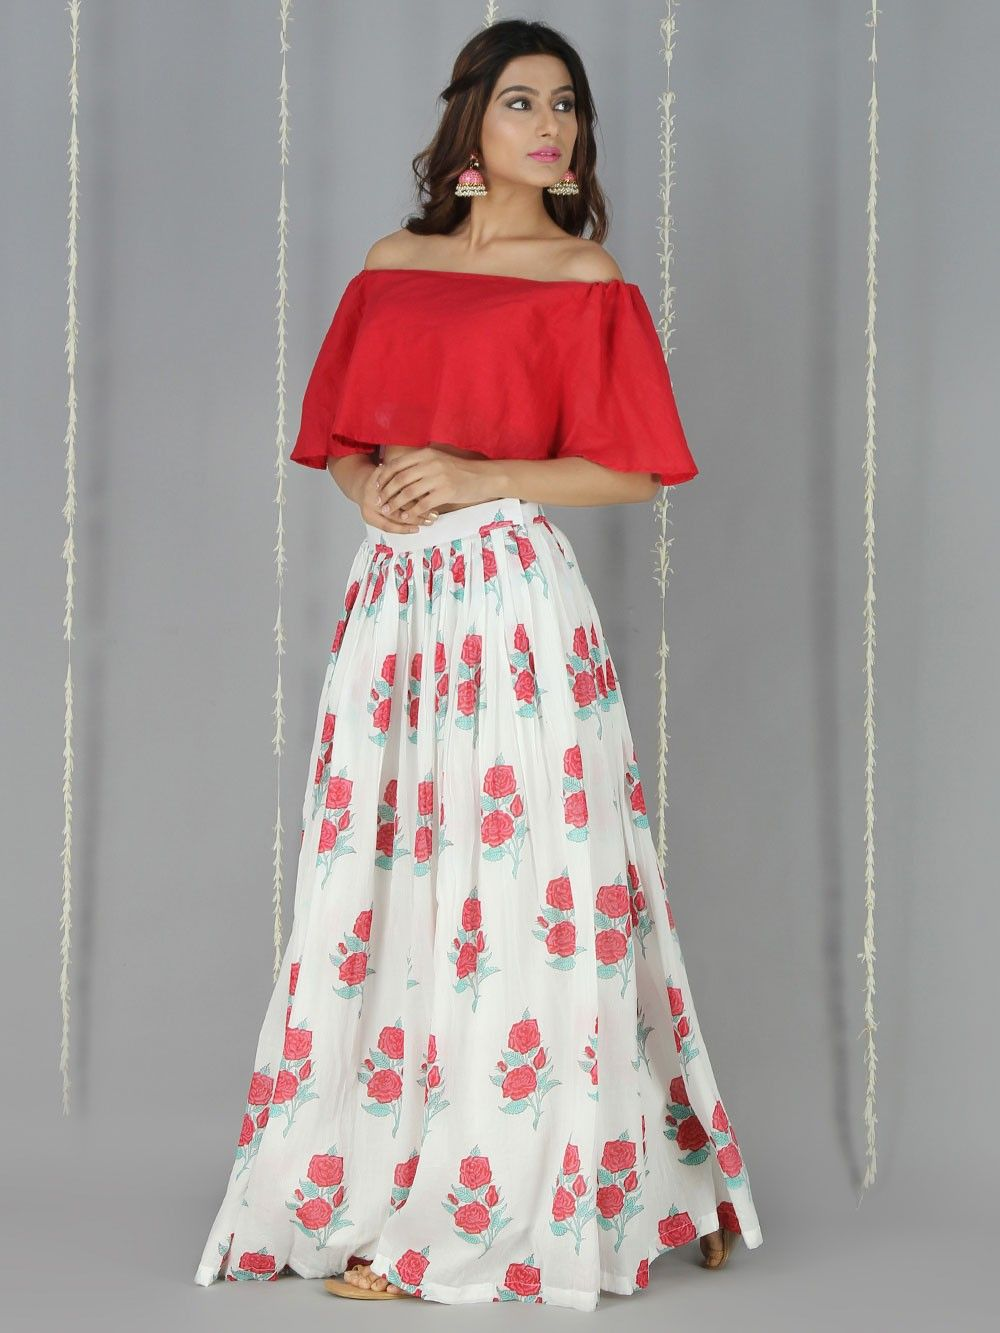 810125d73 Red White Mulmul Off Shoulder Crop Top with Skirt - Set of 2. Hover to zoom